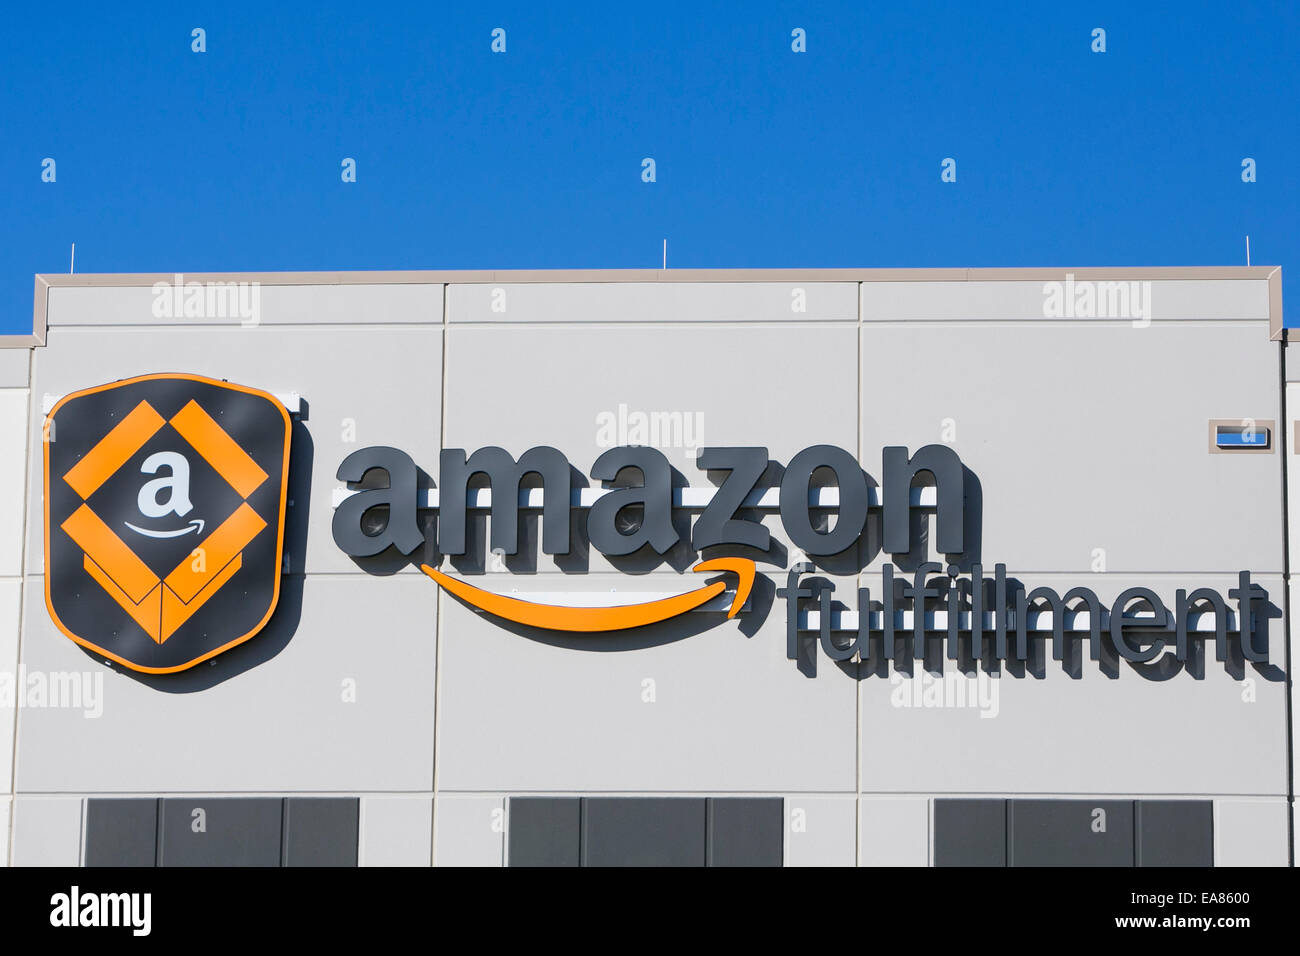 Un centre de réalisation d'Amazon.com à Chester, en Virginie. Photo Stock